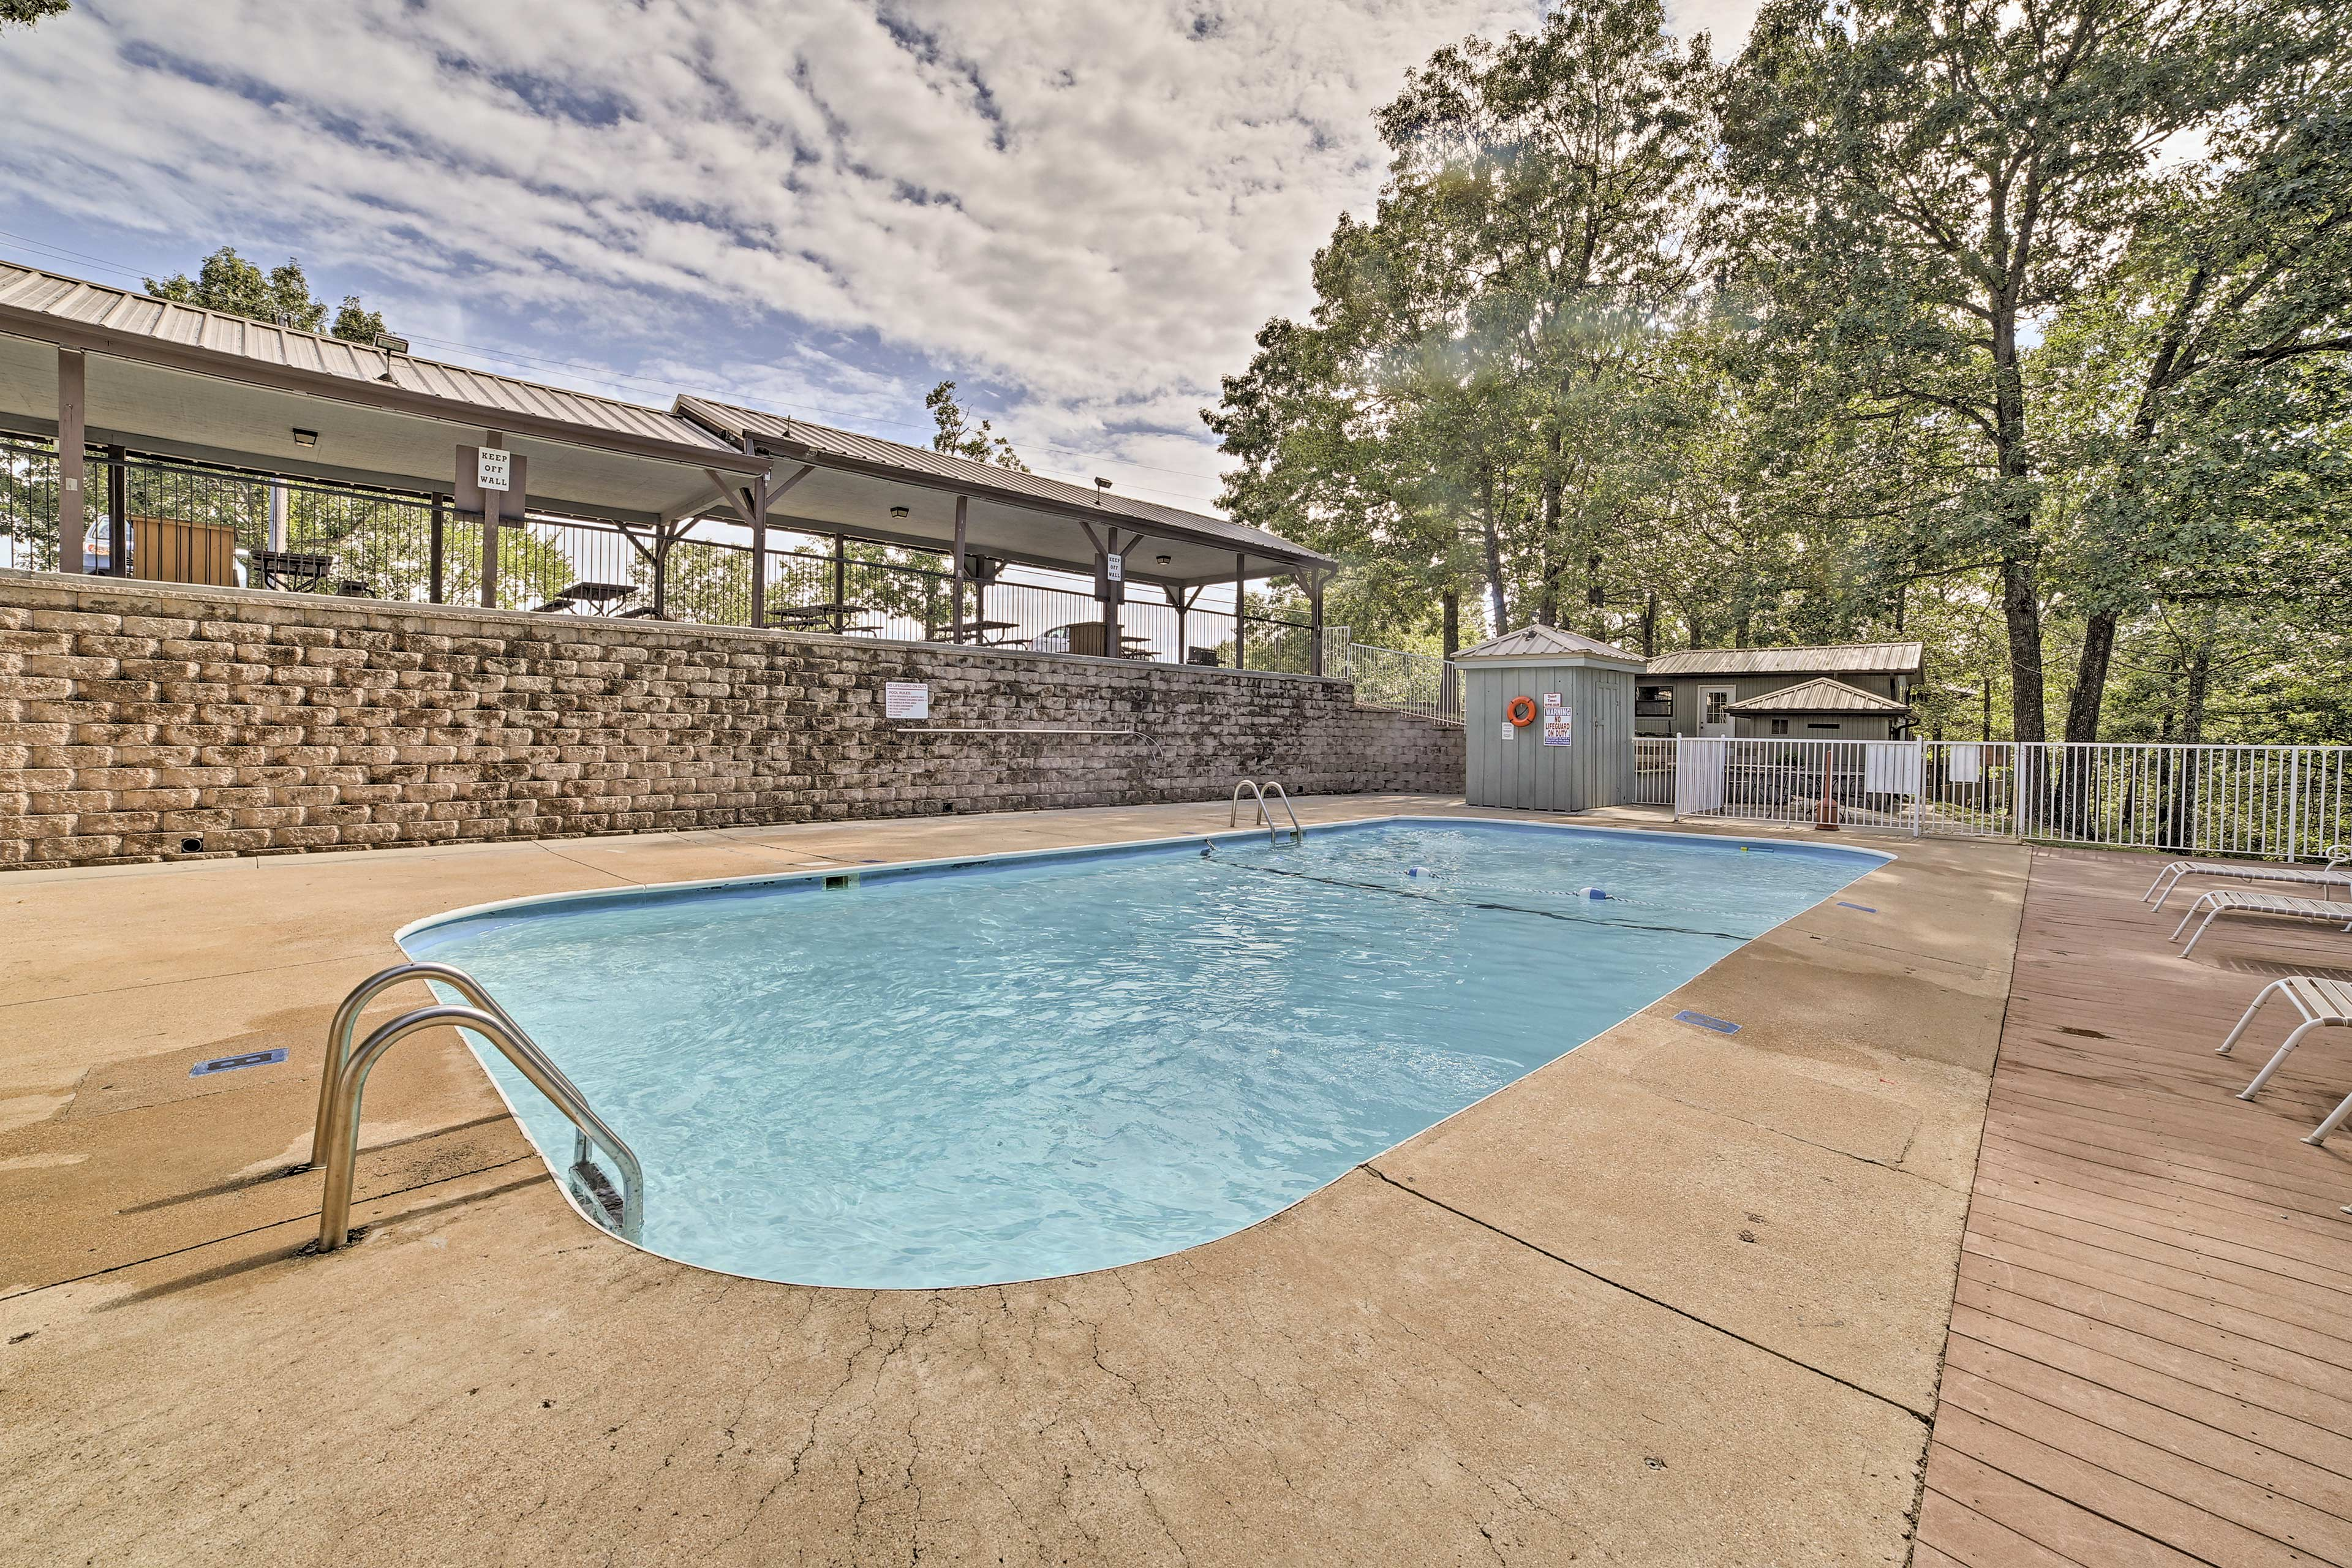 Spend the day by one of 2 community pools!